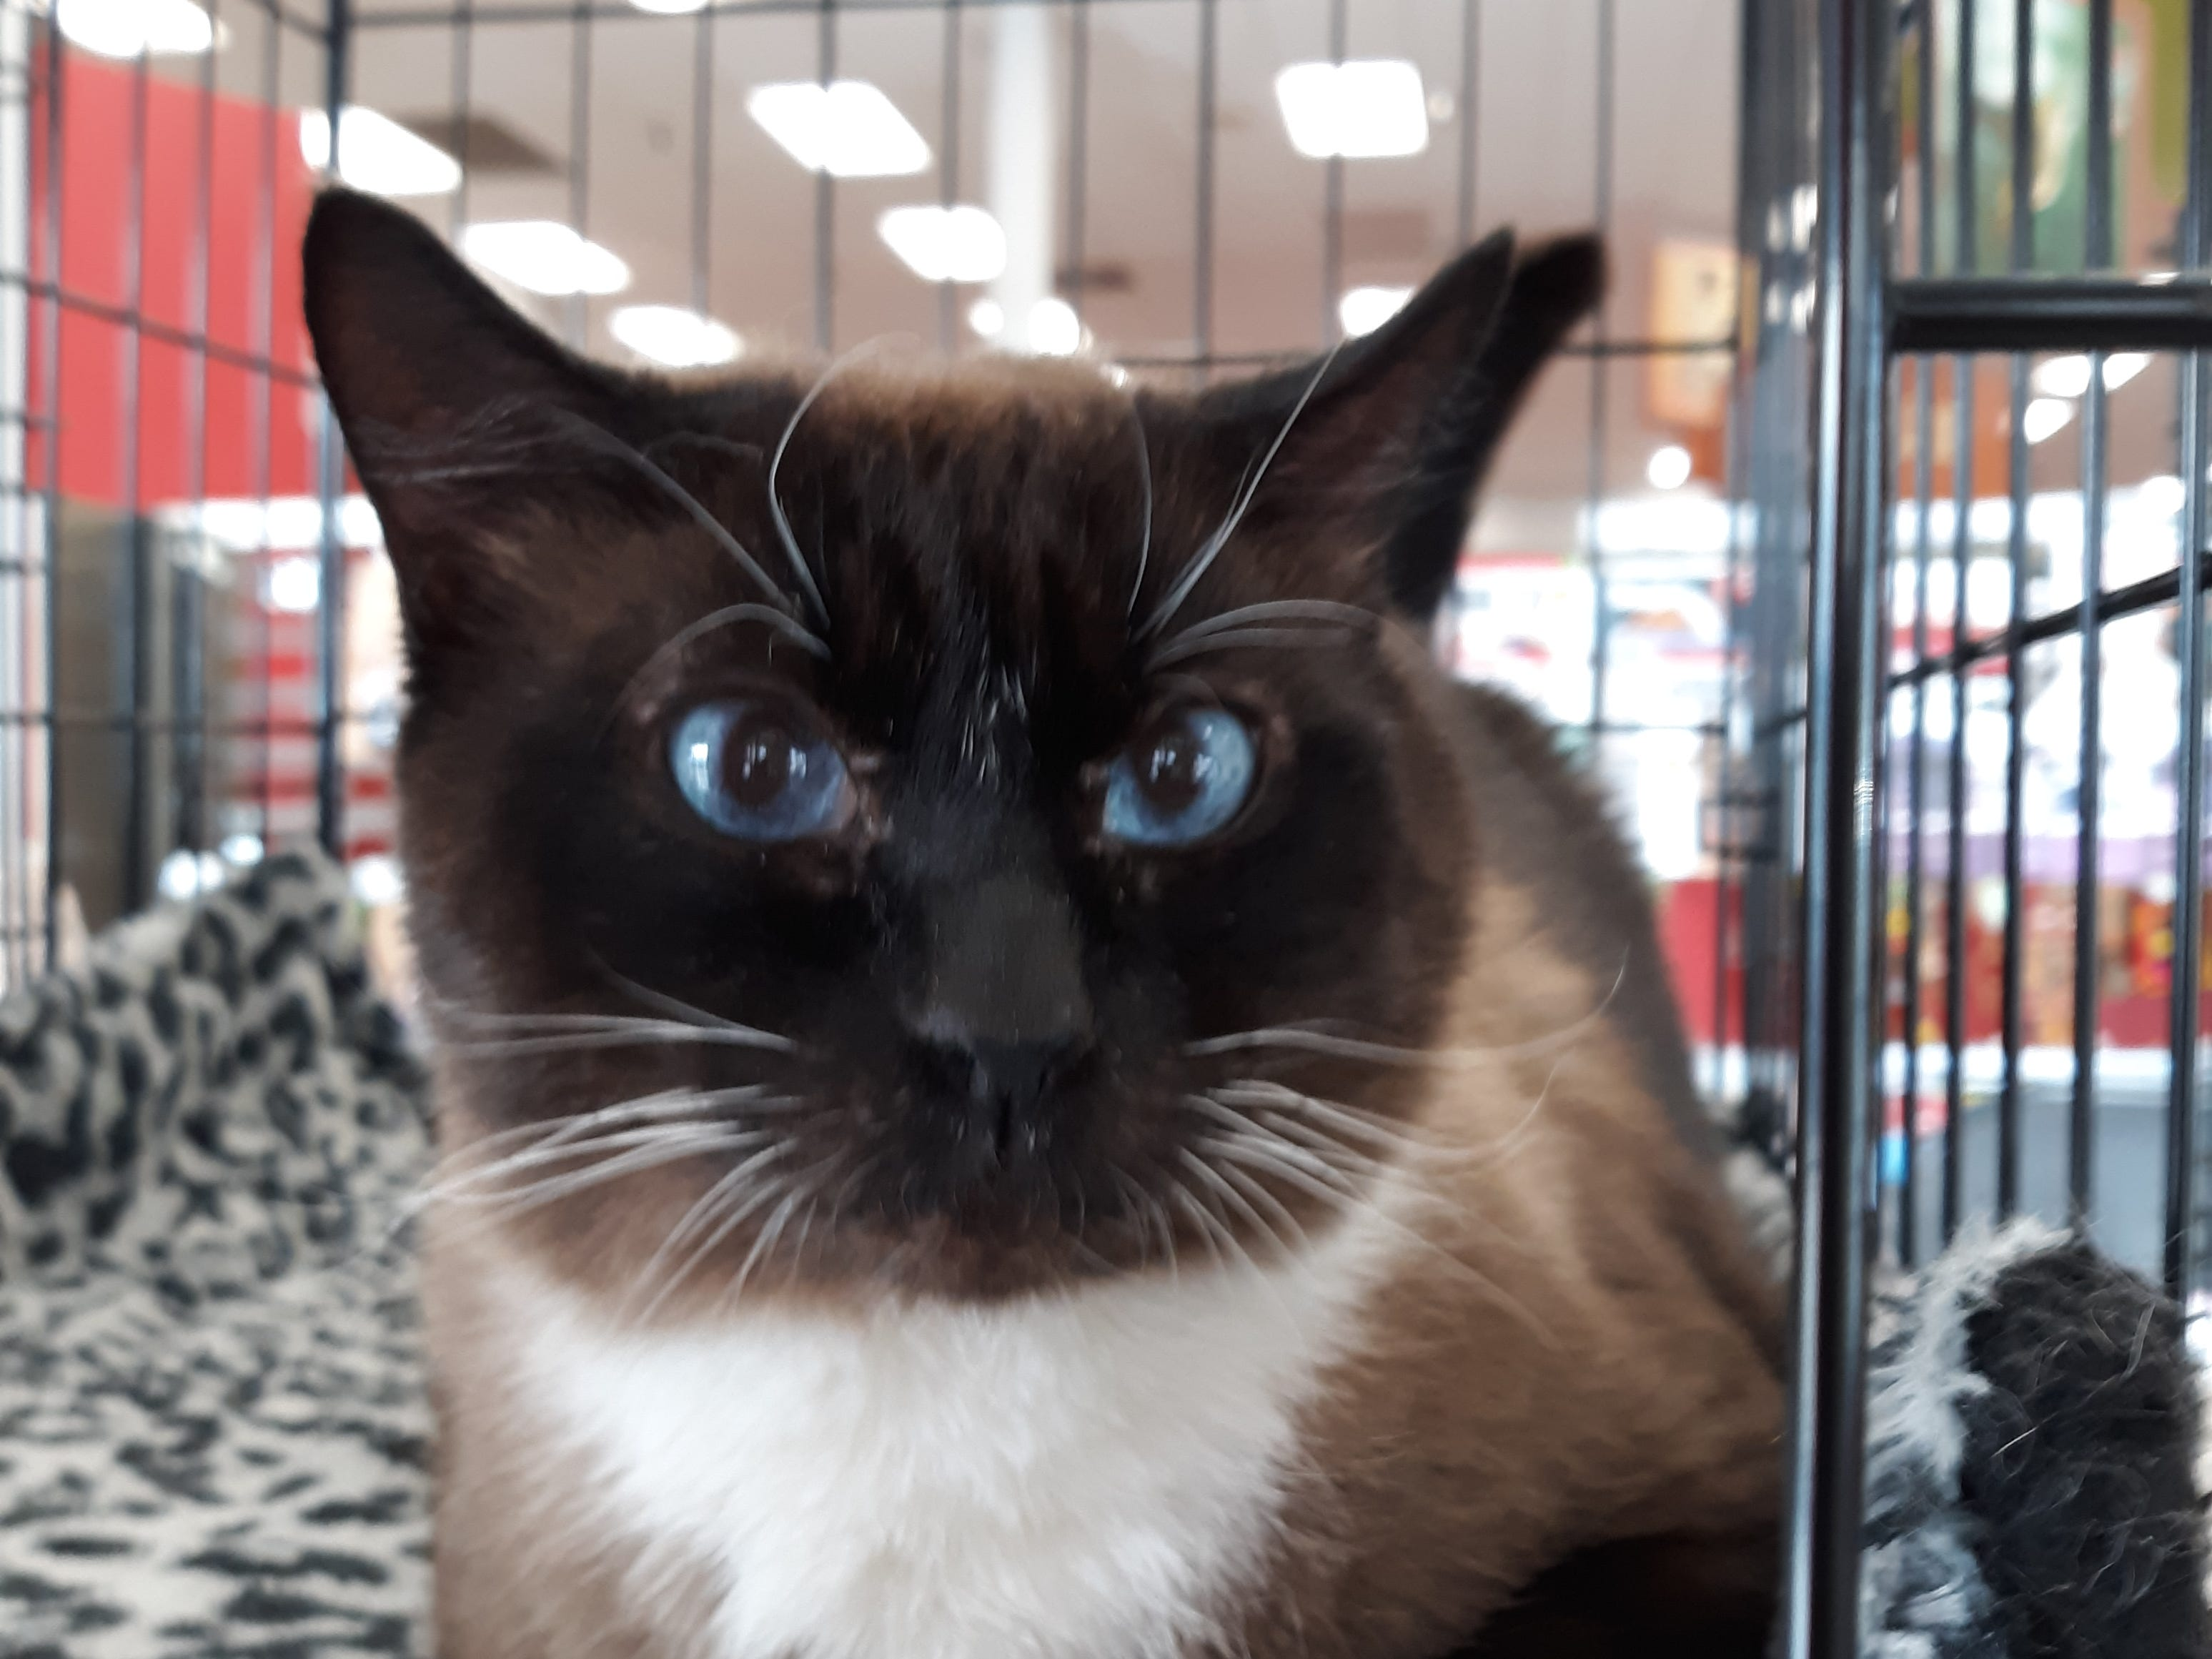 Sox is a 5-year-old, male, Snowshoe Siamese cat who's current on vaccines. He's a lap cat who's very affectionate. All animal adoptions include spaying or neutering and vaccinations. Apply with Another Chance Animal Welfare League at www.acawl.org. Call 356-0698.